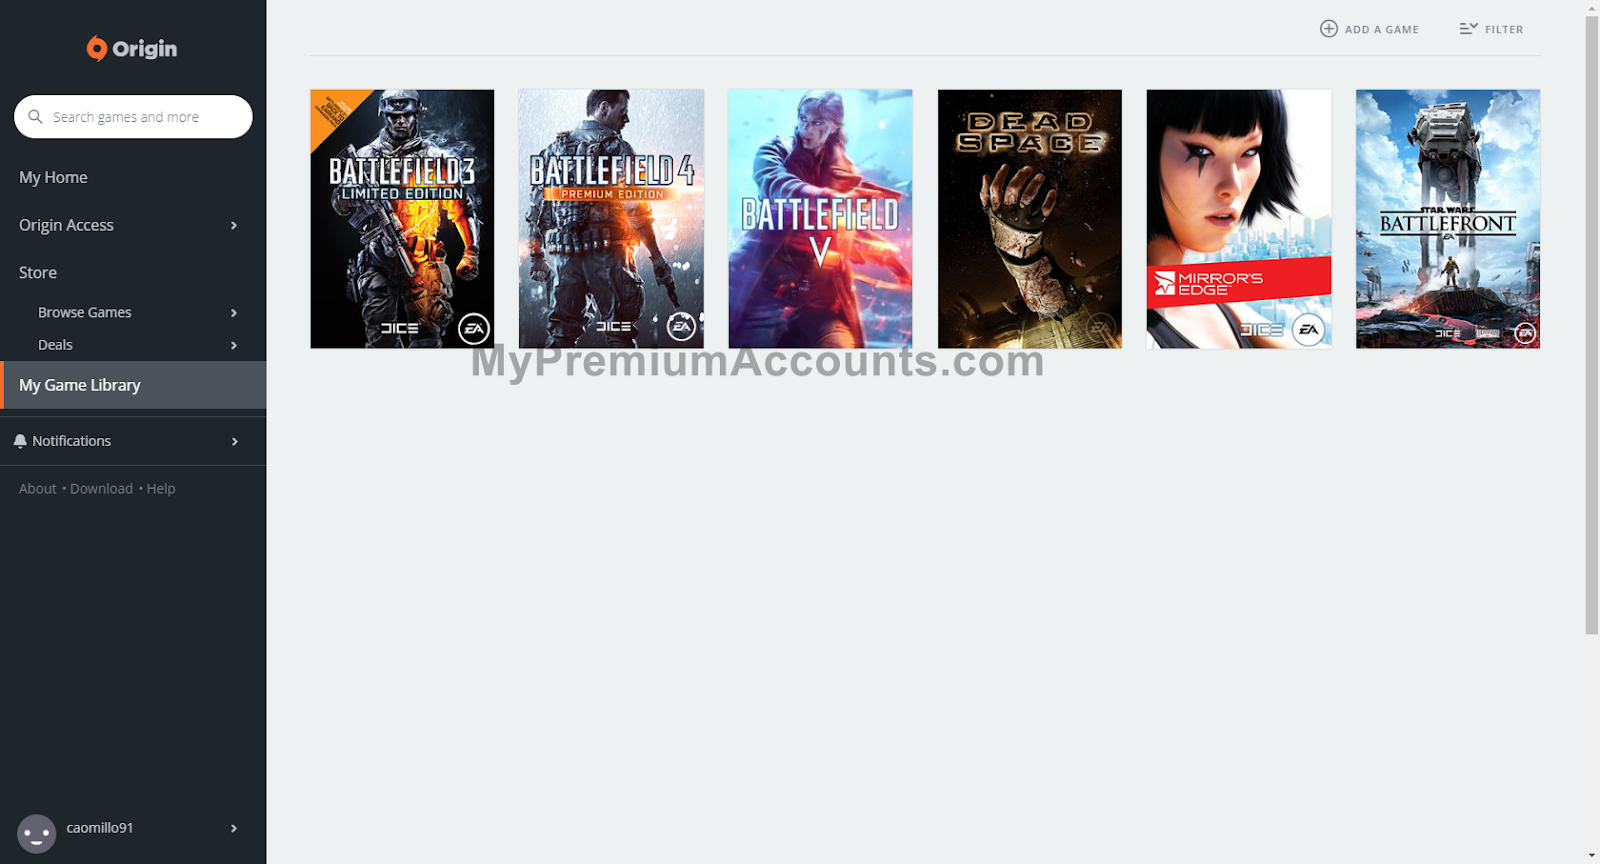 x120 Origin.com Premium Accounts with Games June 28, 2020